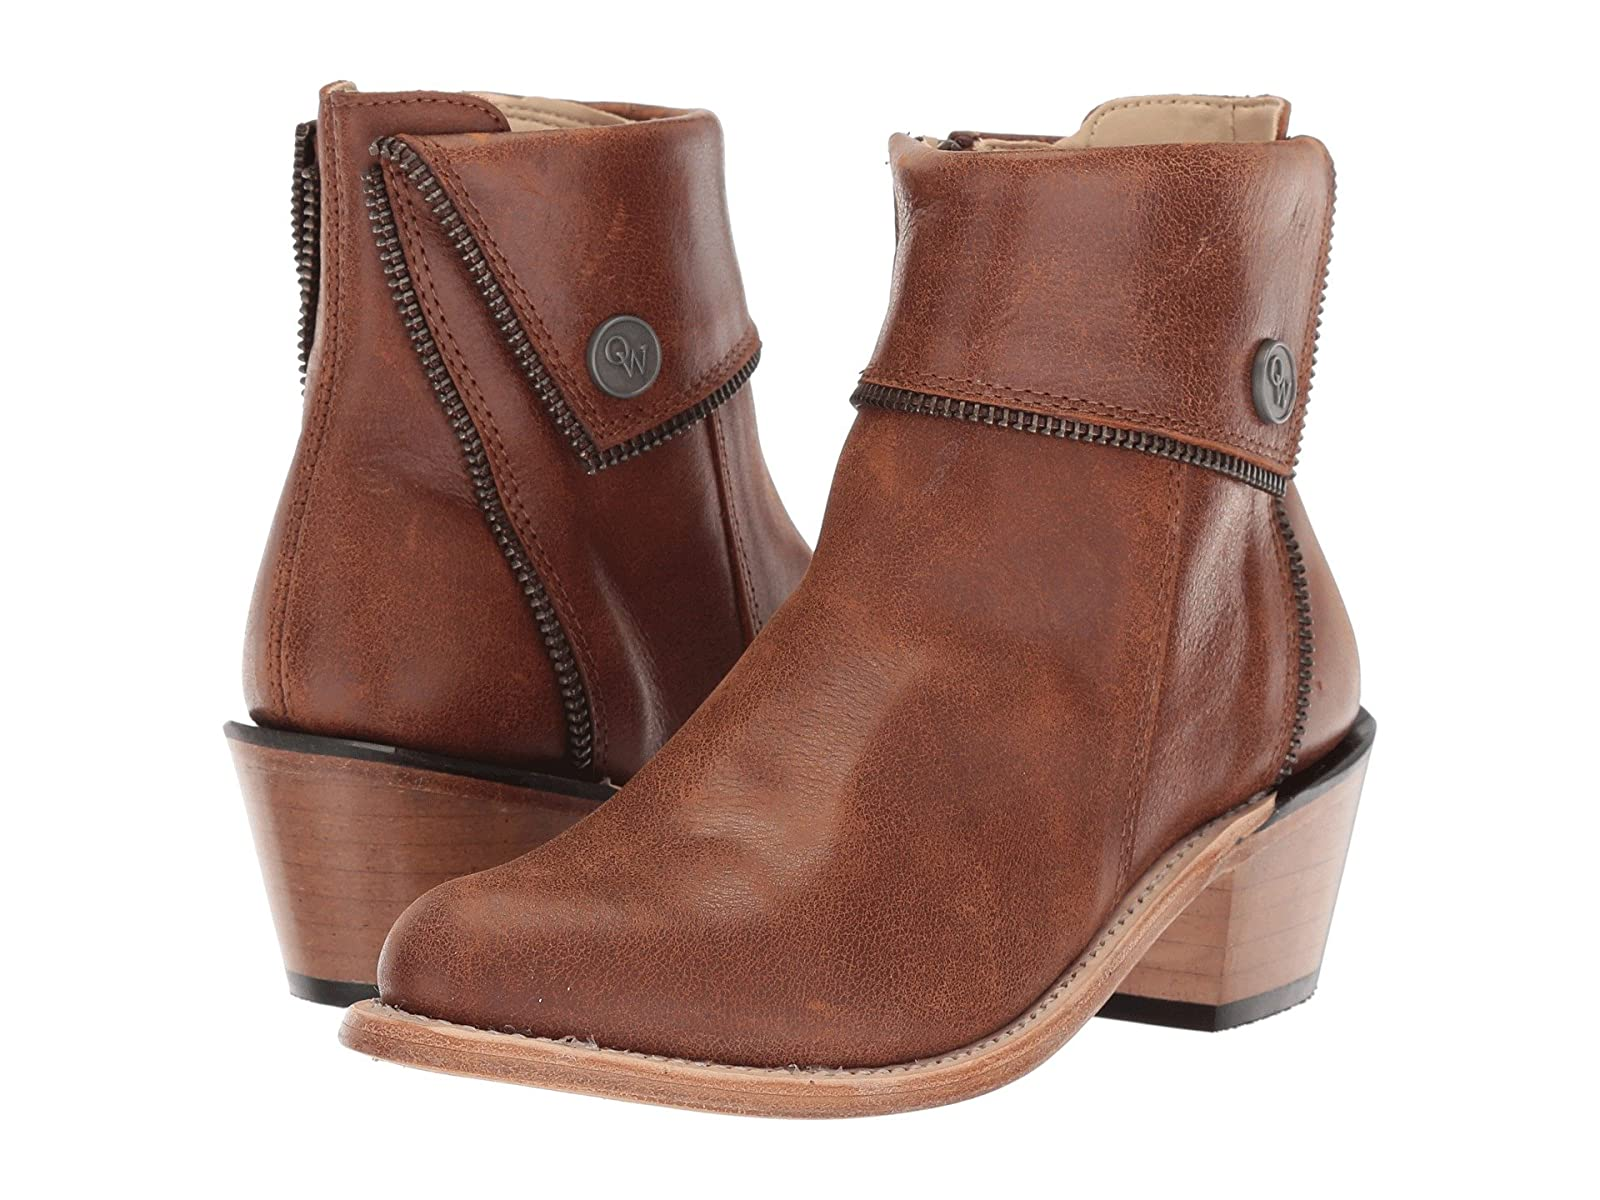 Old West Kids Boots Zipper Shoe Boot (Toddler/Little Kid)Economical and quality shoes